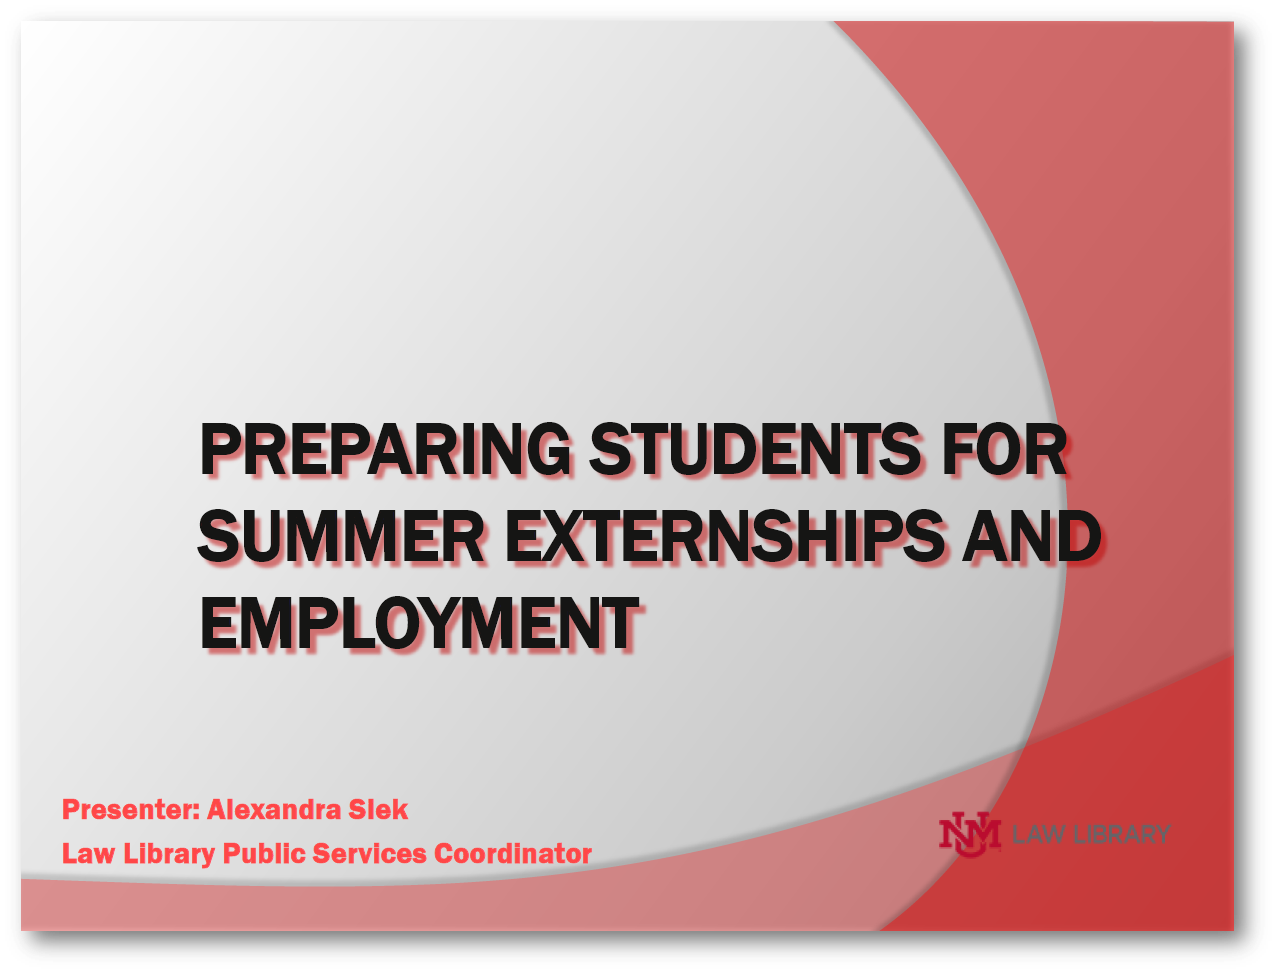 Click to download slides for this program.